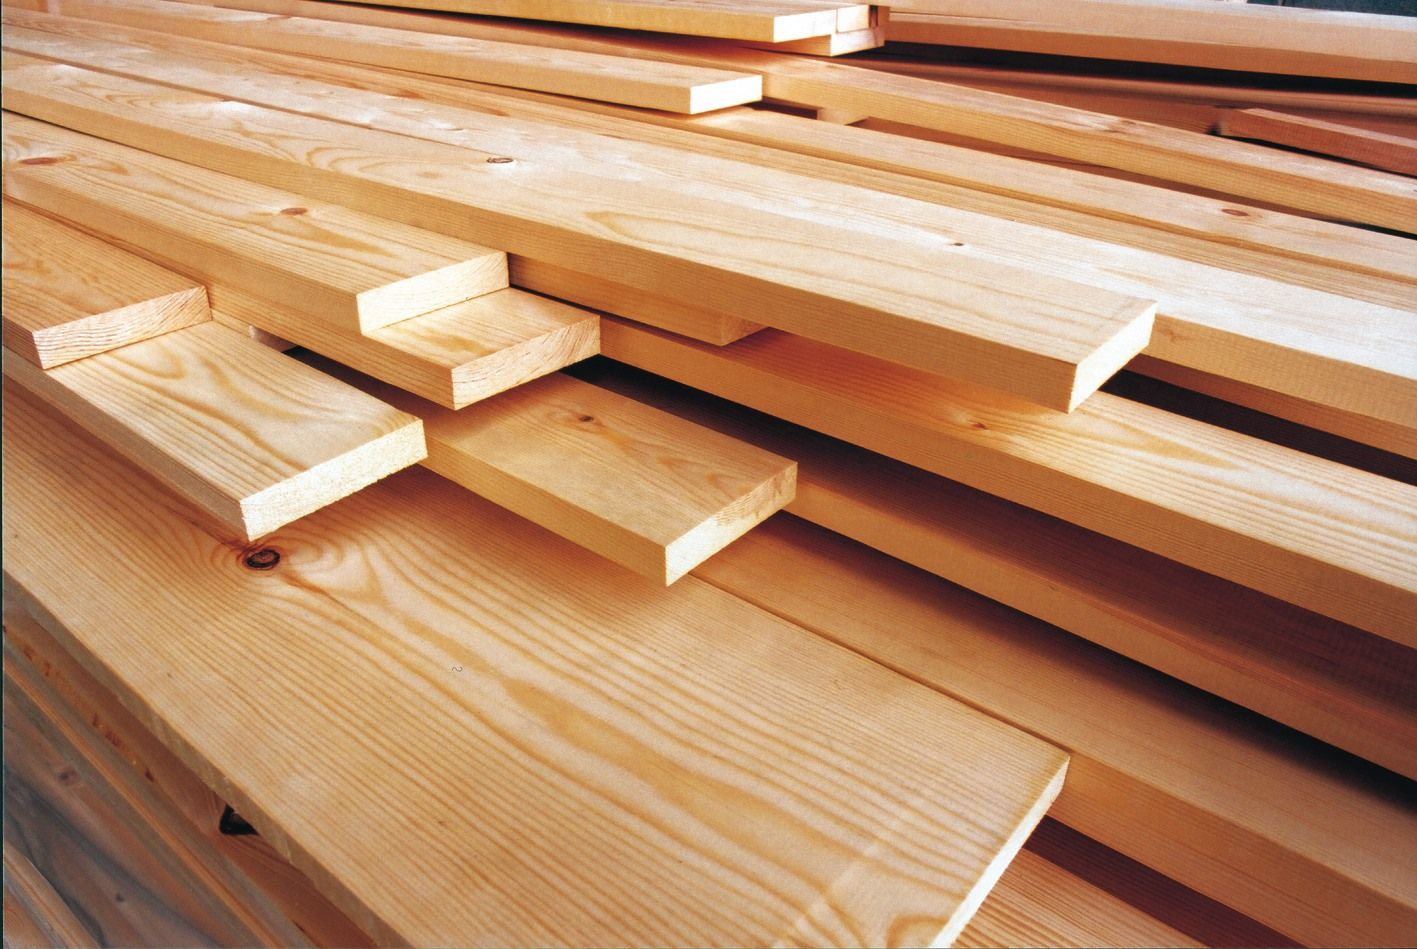 Timber Trade Topics - Sourcing Sustainable Timber